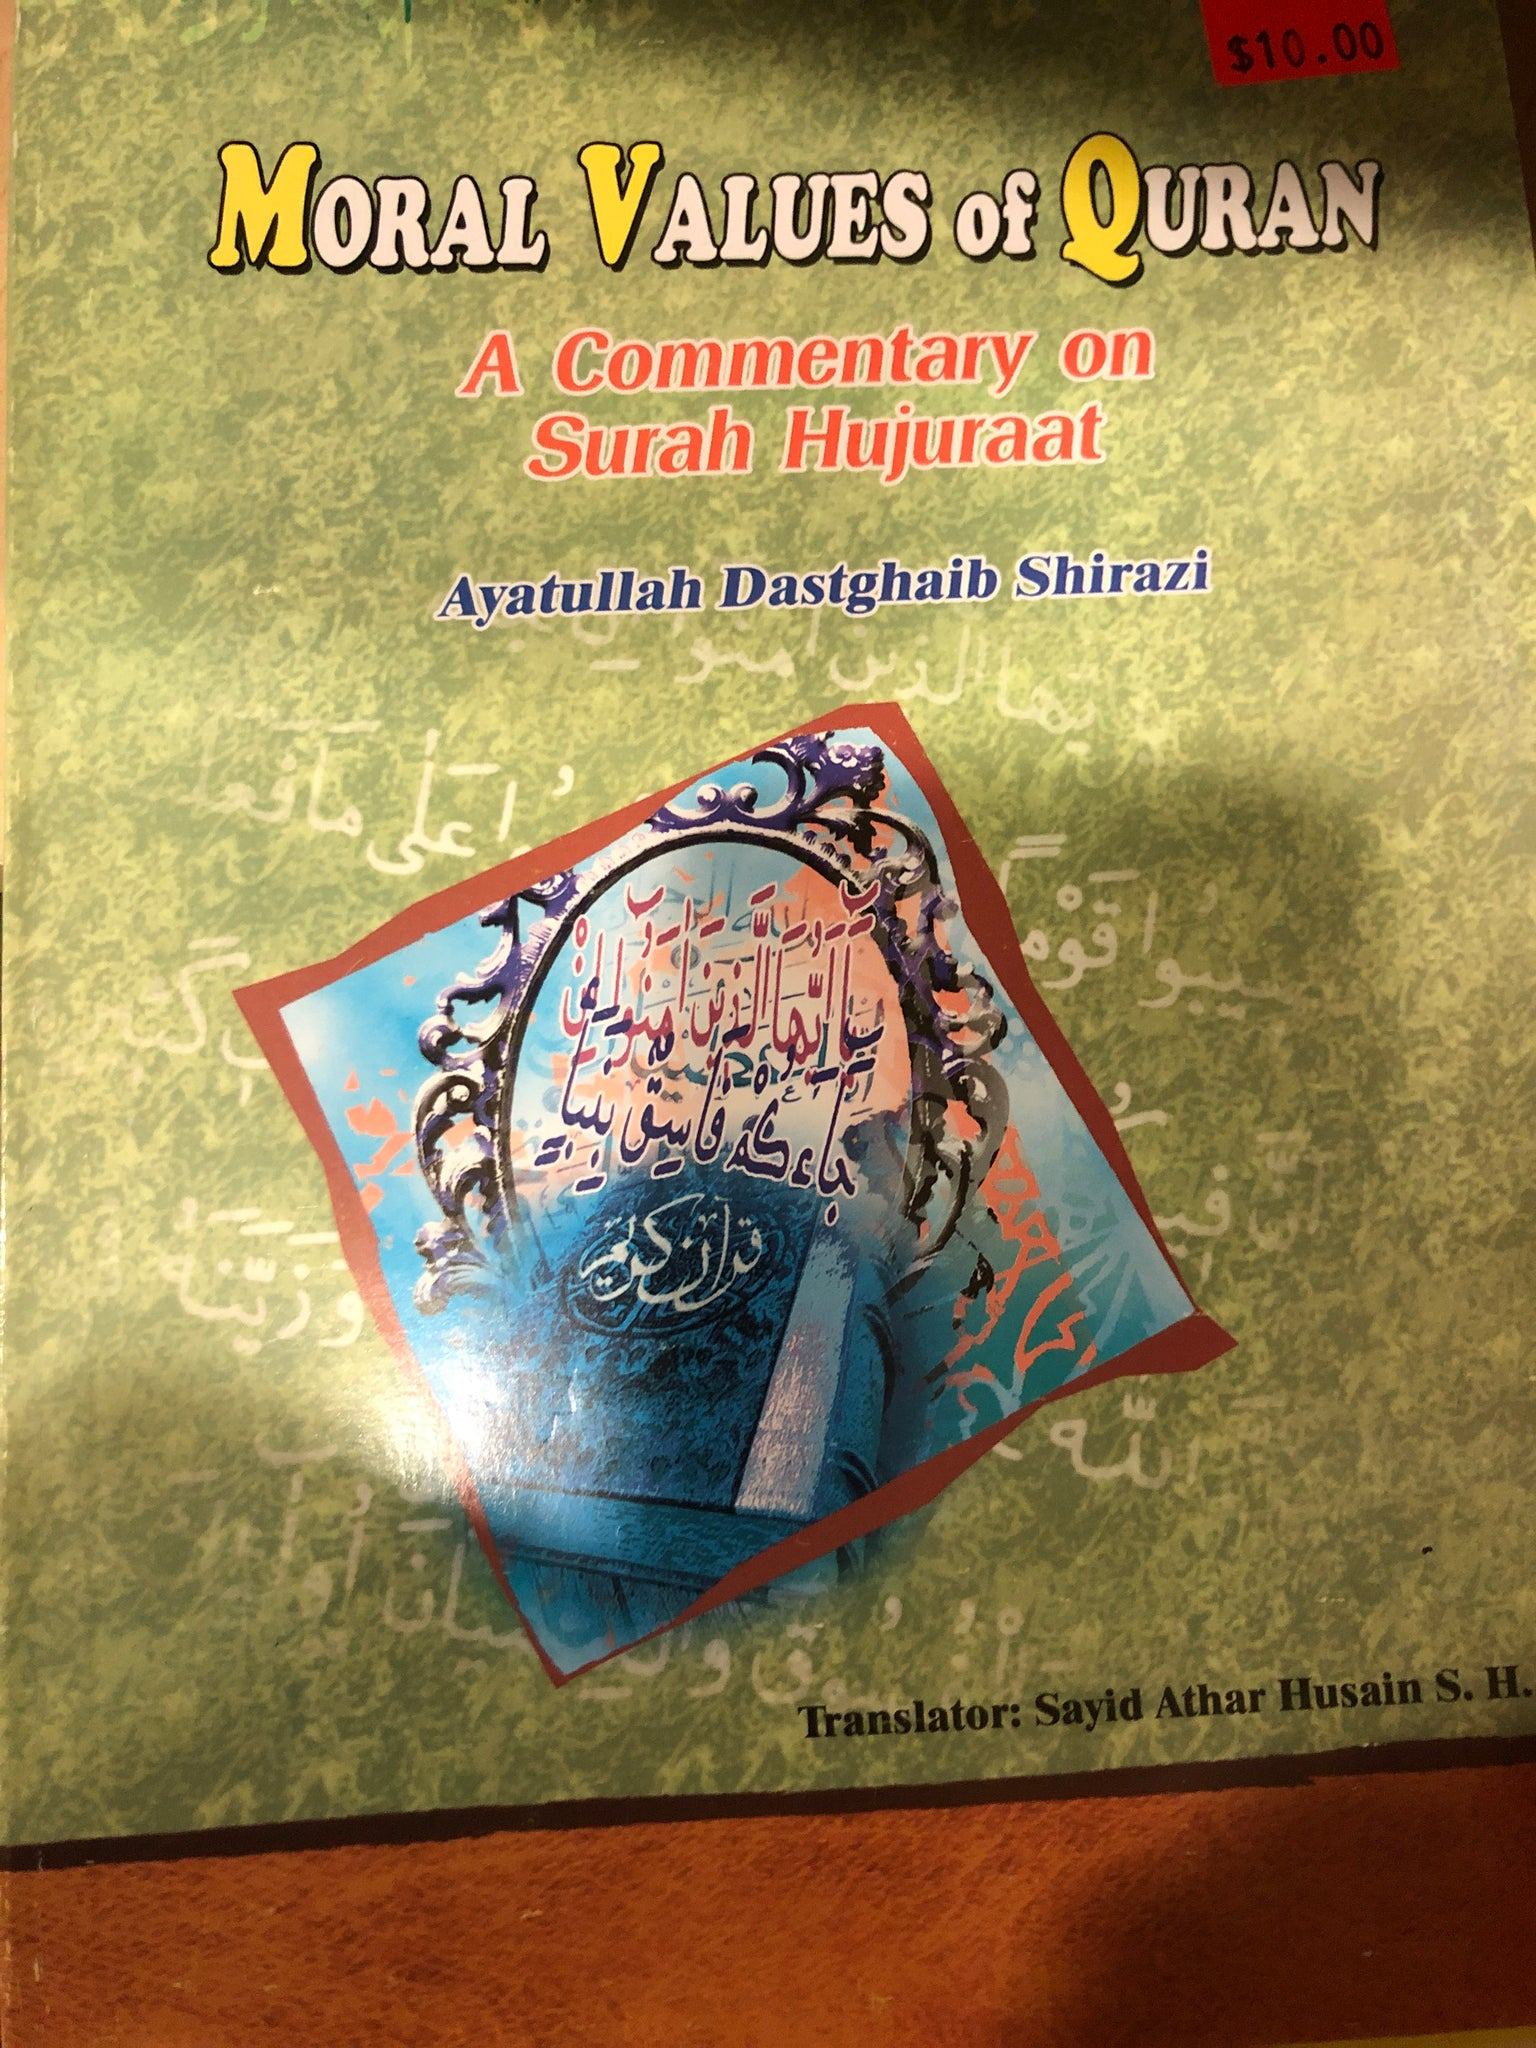 Moral Values of Quran - A Commentary on Surah Hujuraat